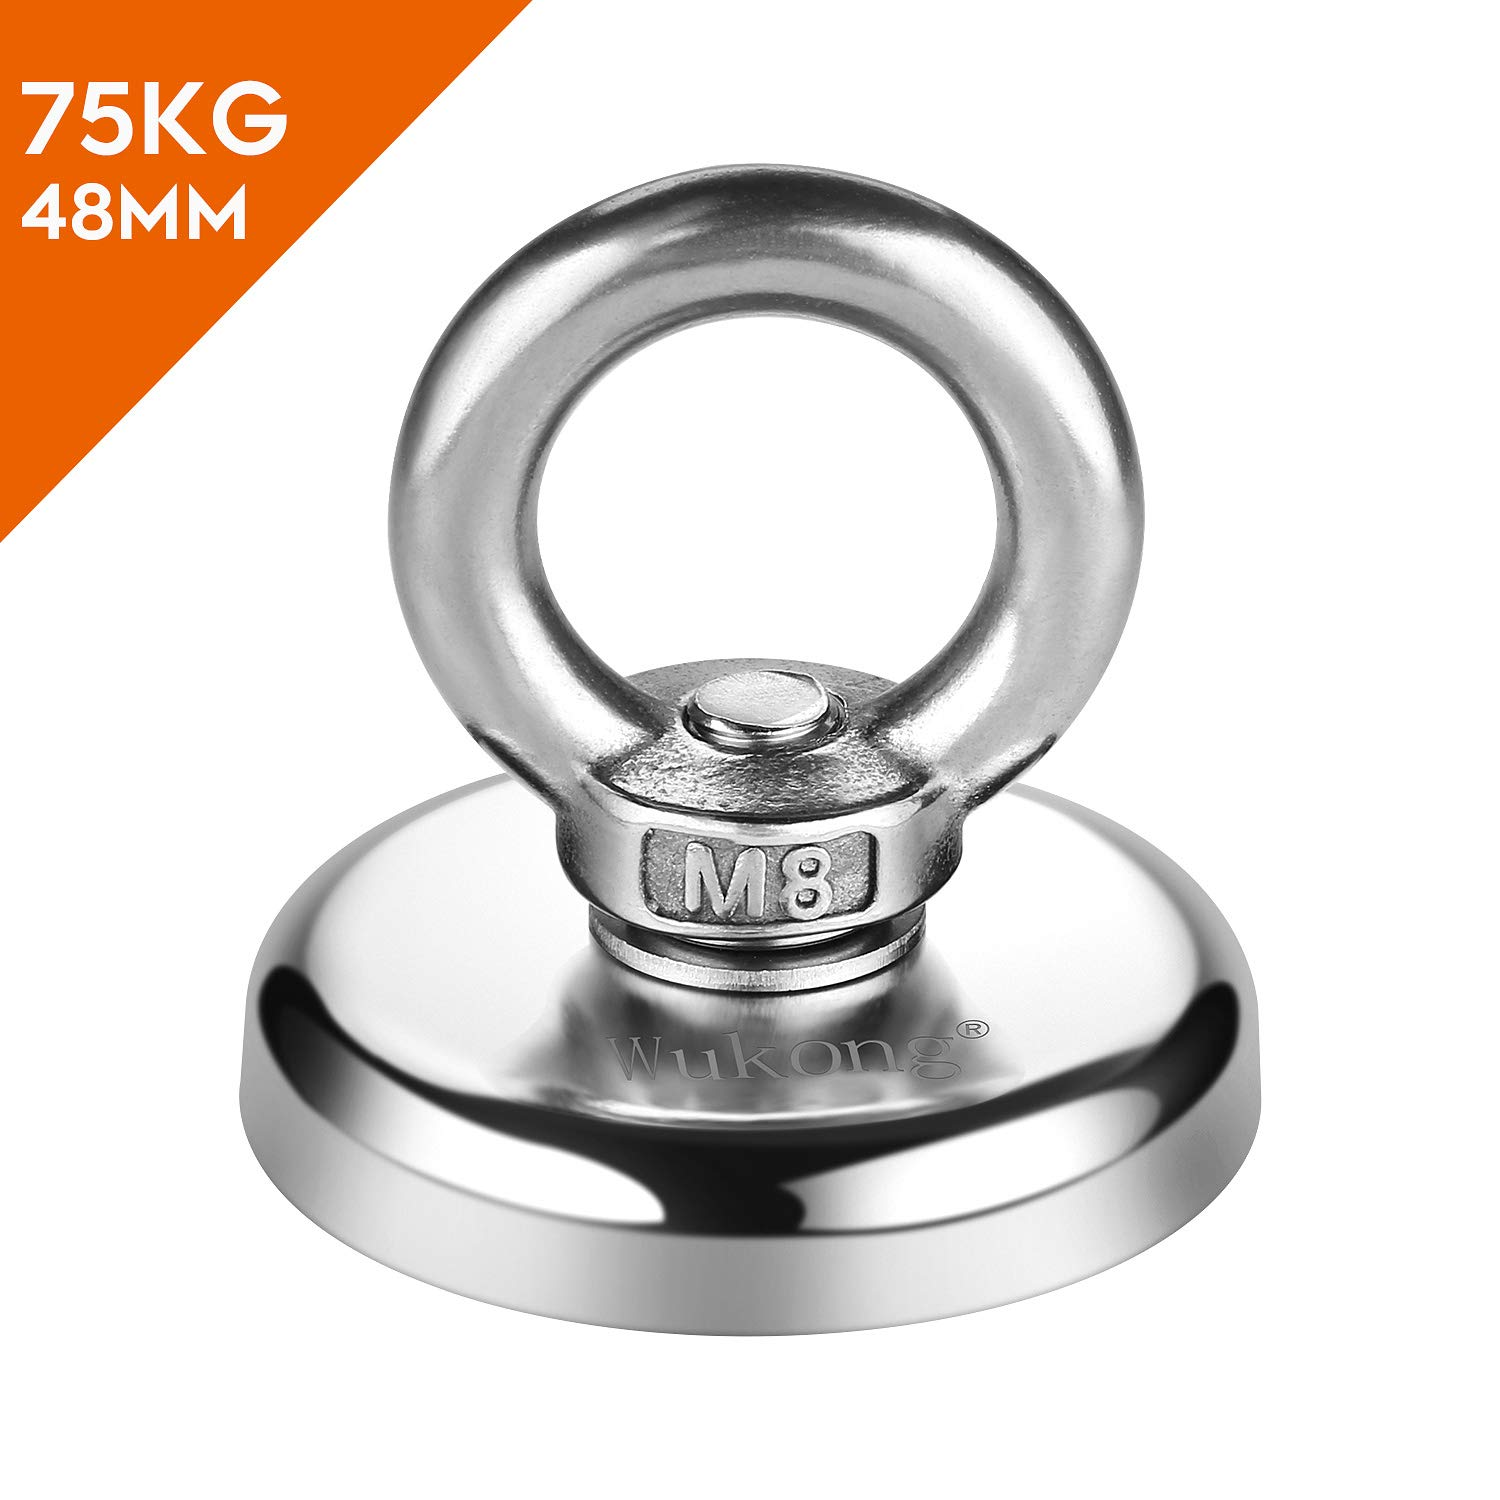 N52 Magnetic Grade for Magnet Fishing and Salvage in River 48mm Diameter Super Powerful Big Round Neodymium Magnet Pulling Force Fishing Magnets 75KG Wukong 165LB